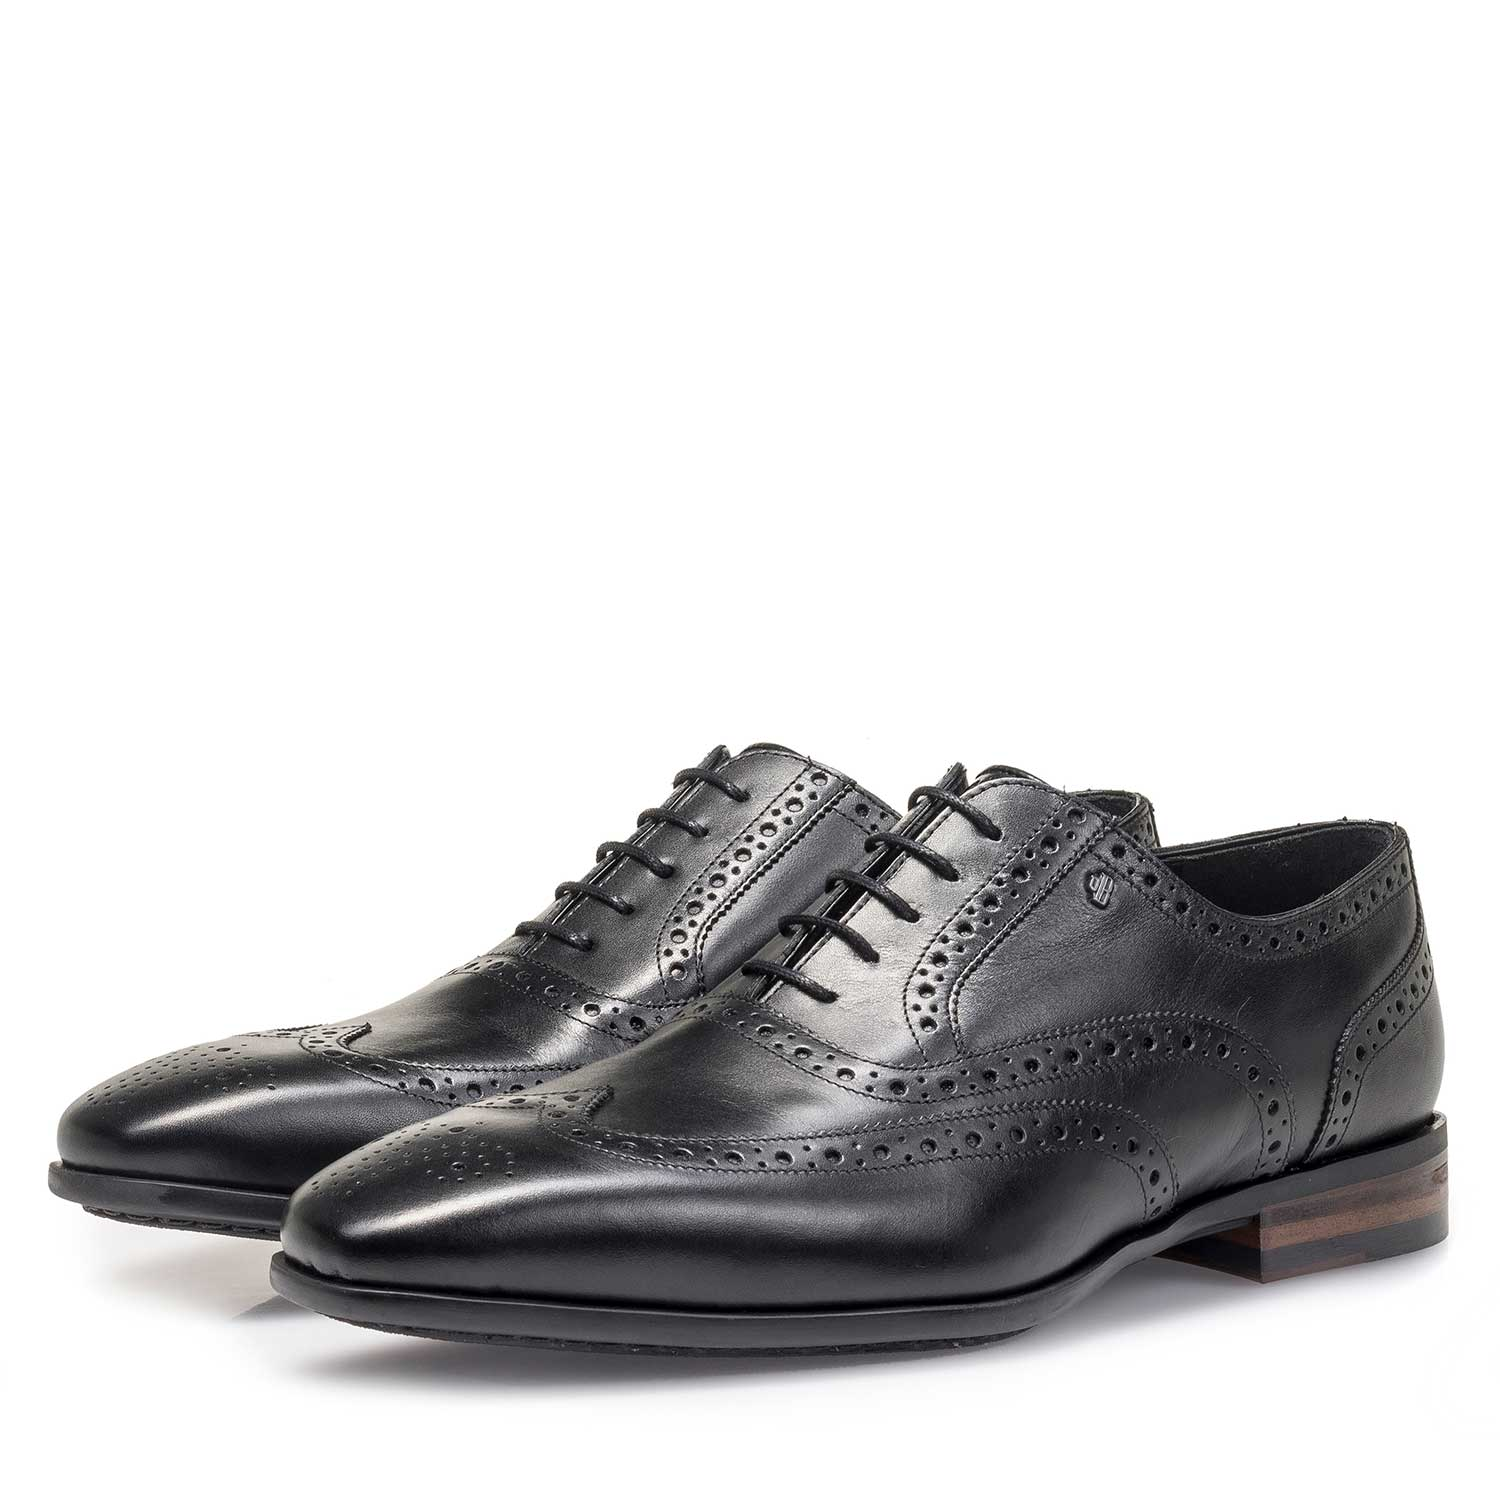 19105/05 - Black calf leather brogue